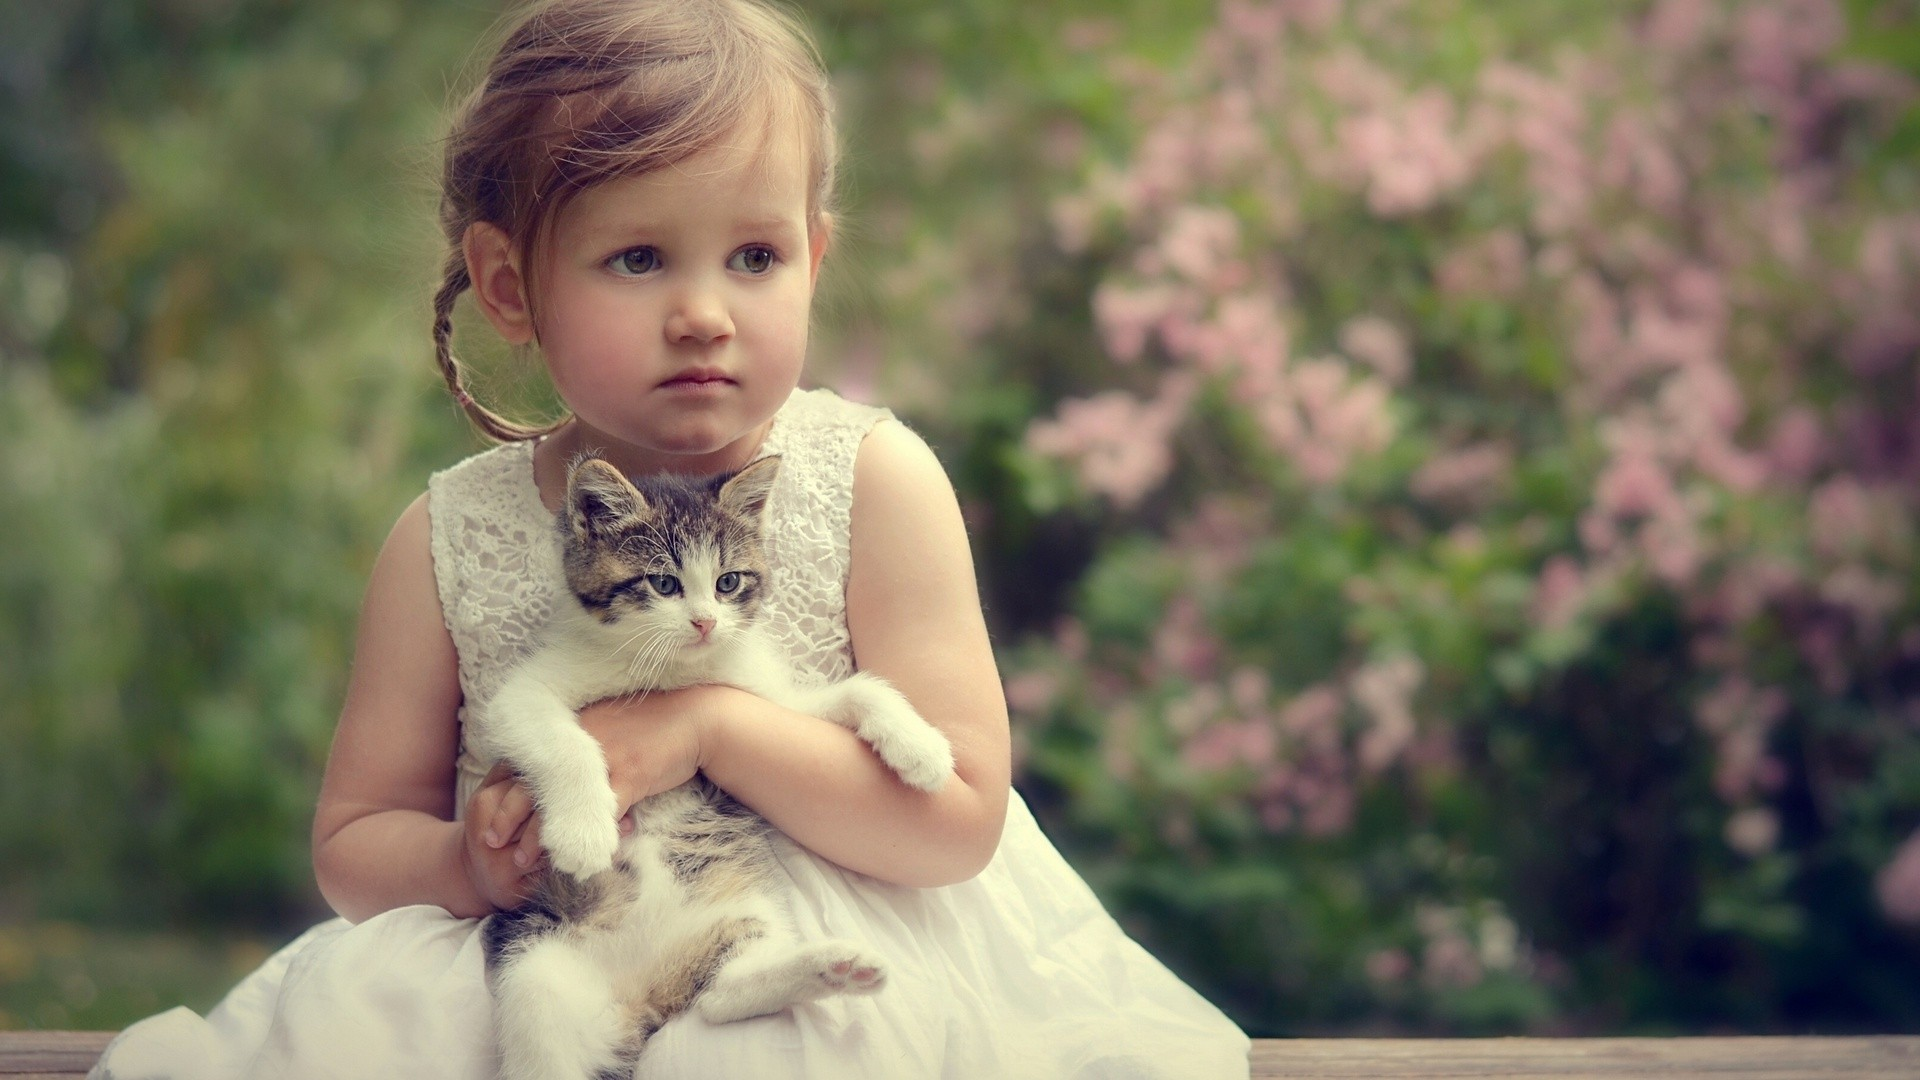 Babies Wallpapers For Laptop: Sweet-doll-girl-with-cati-free-hd-wallpaer